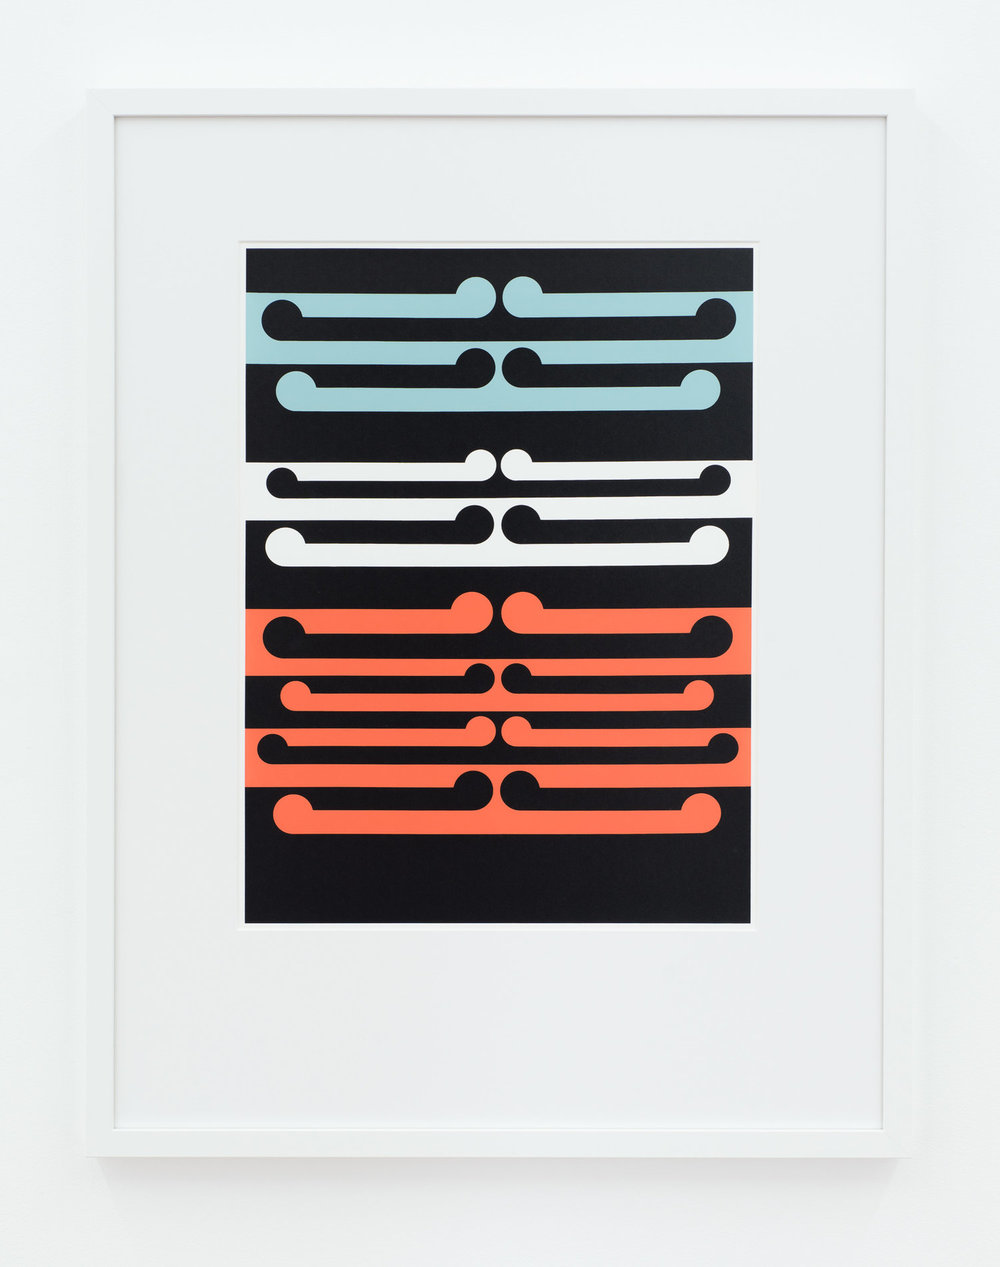 Gordon Walters  Painting No.7  (1965), 2016 screenprint on archival paper Image size 505 x 380 mm Framed size 795 x 615 mm Edition of 100